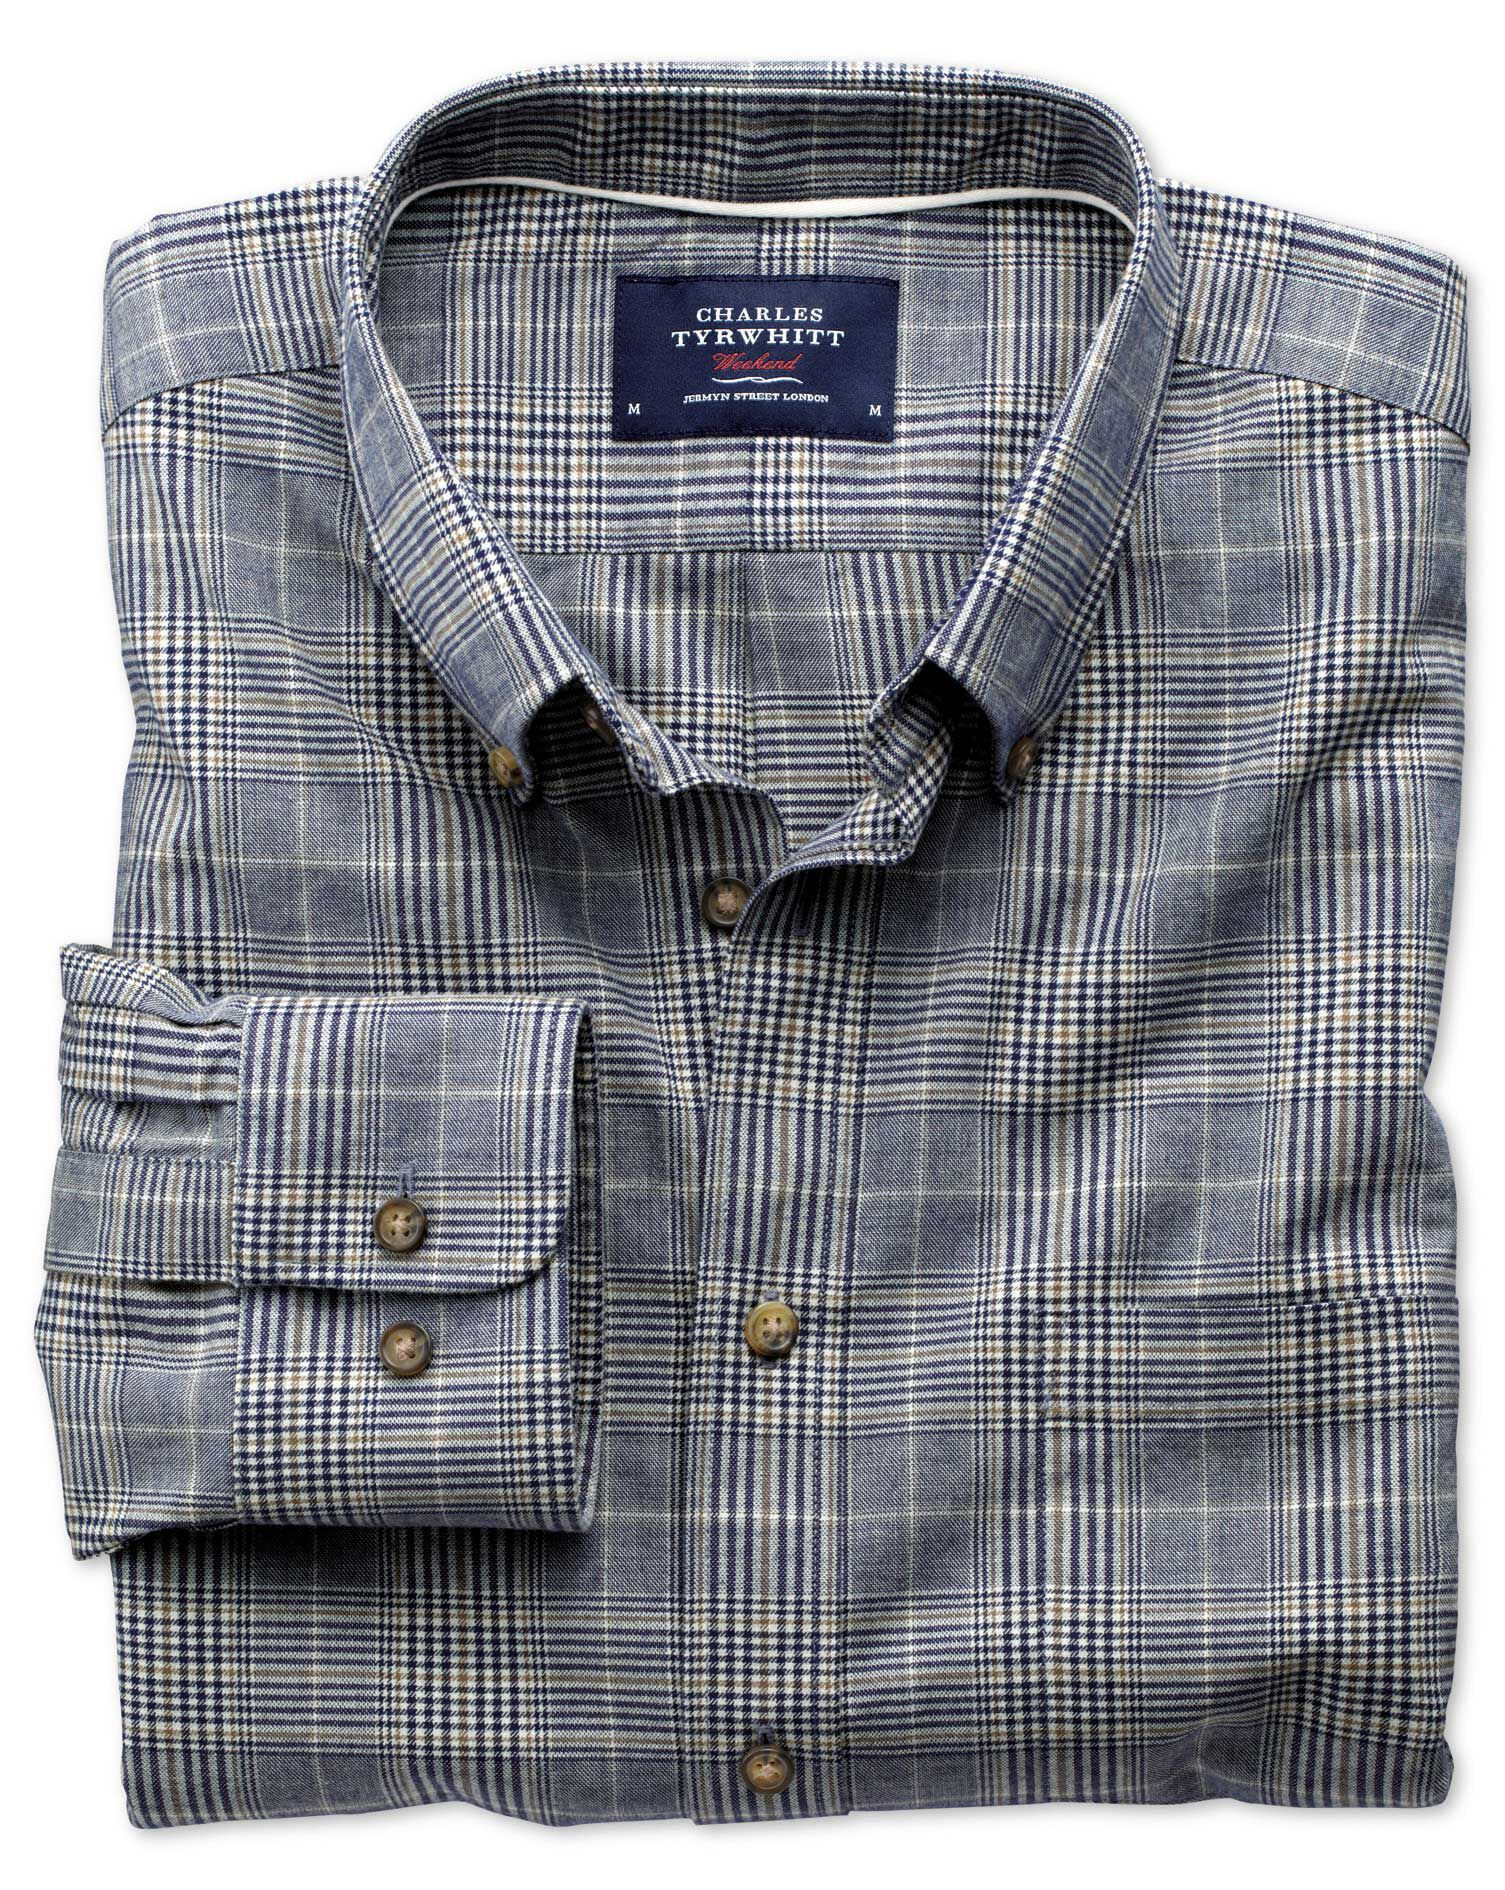 Classic Fit Navy and Brown Check Tweed Look Cotton Shirt Single Cuff Size XL by Charles Tyrwhitt